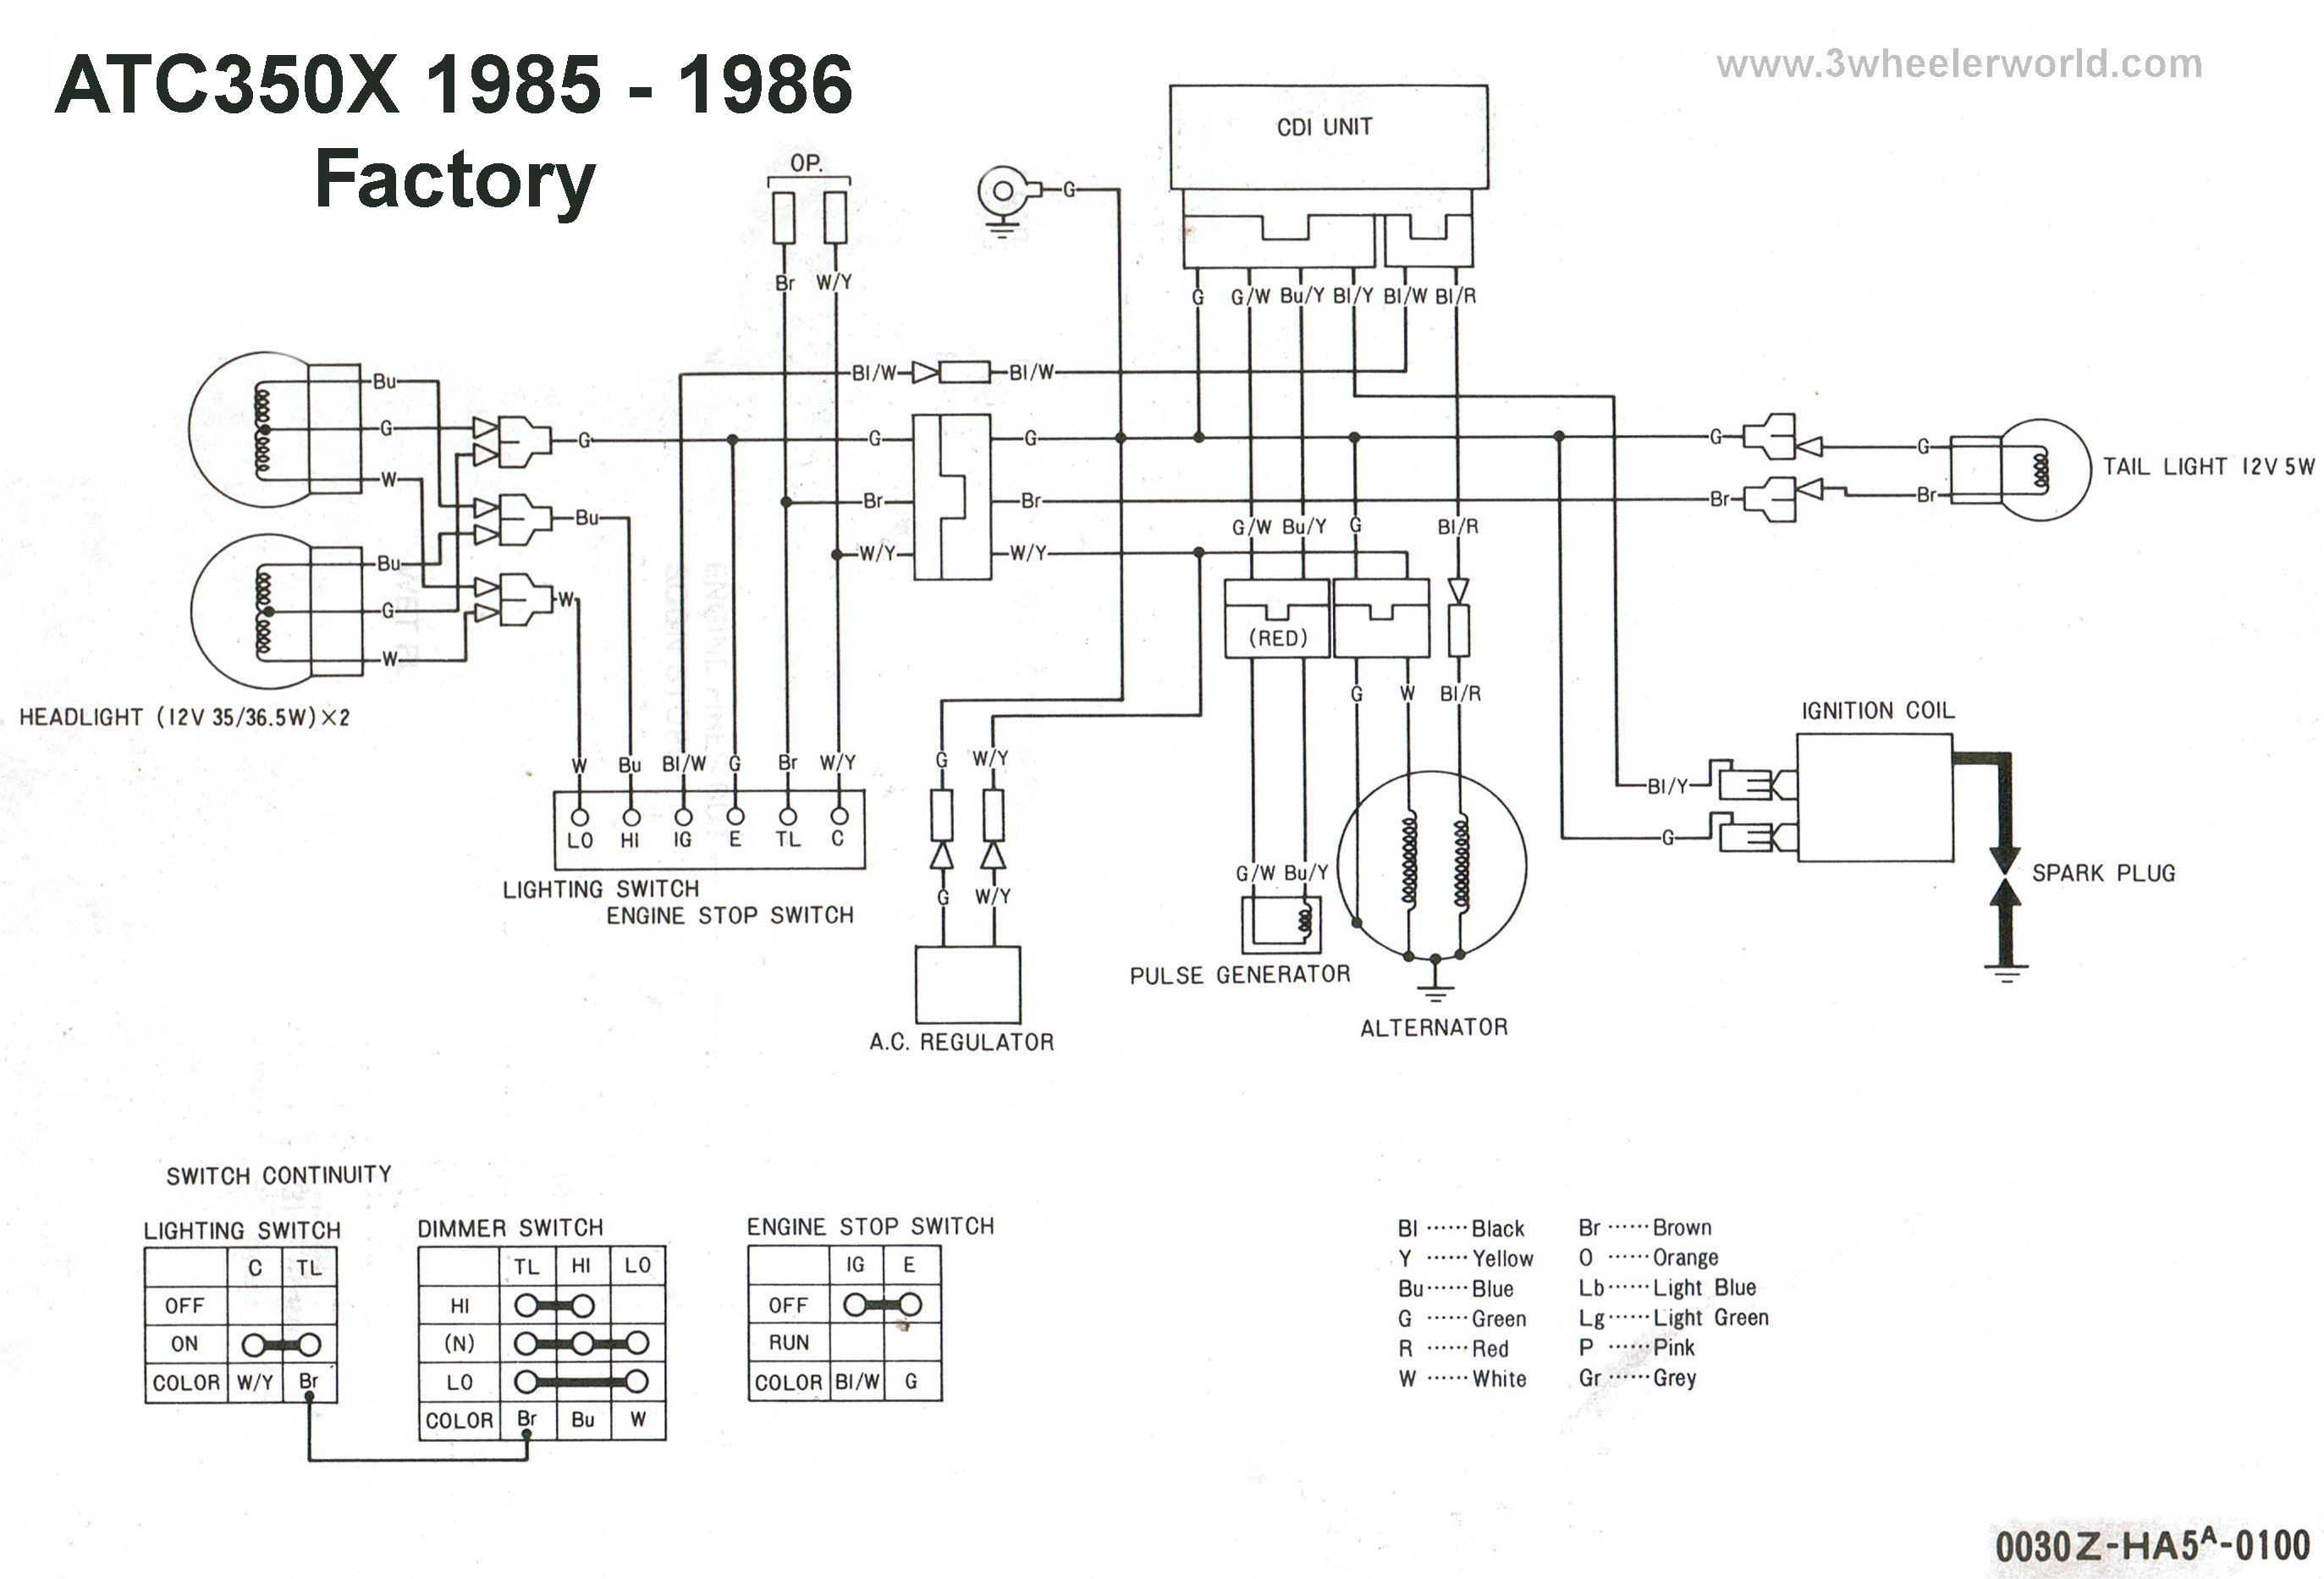 ATC350Xx85Thru86 3 wheeler world tech help honda wiring diagrams wiring diagram 1985 honda 250 fourtrax at bakdesigns.co